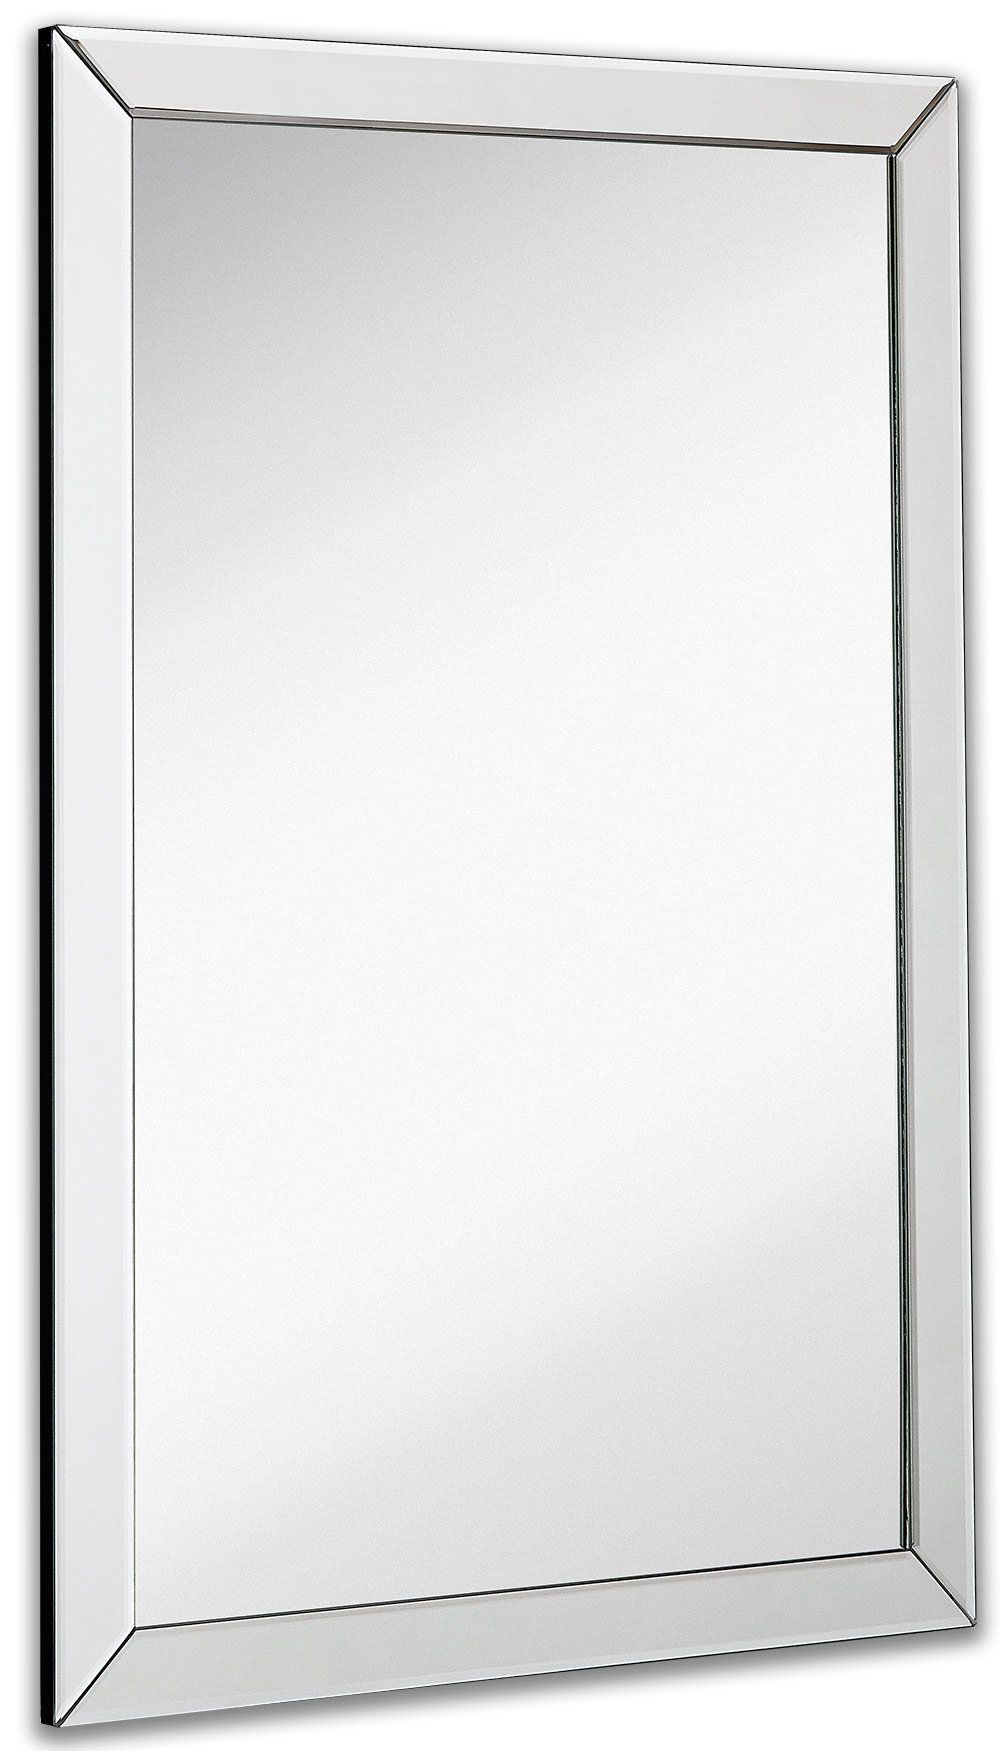 Large Flat Framed Wall Mirror With 2 Inch Edge Beveled Mirror Frame Premium Silver Backed Glass Pan Framed Mirror Wall Frames On Wall Beveled Mirror Bathroom